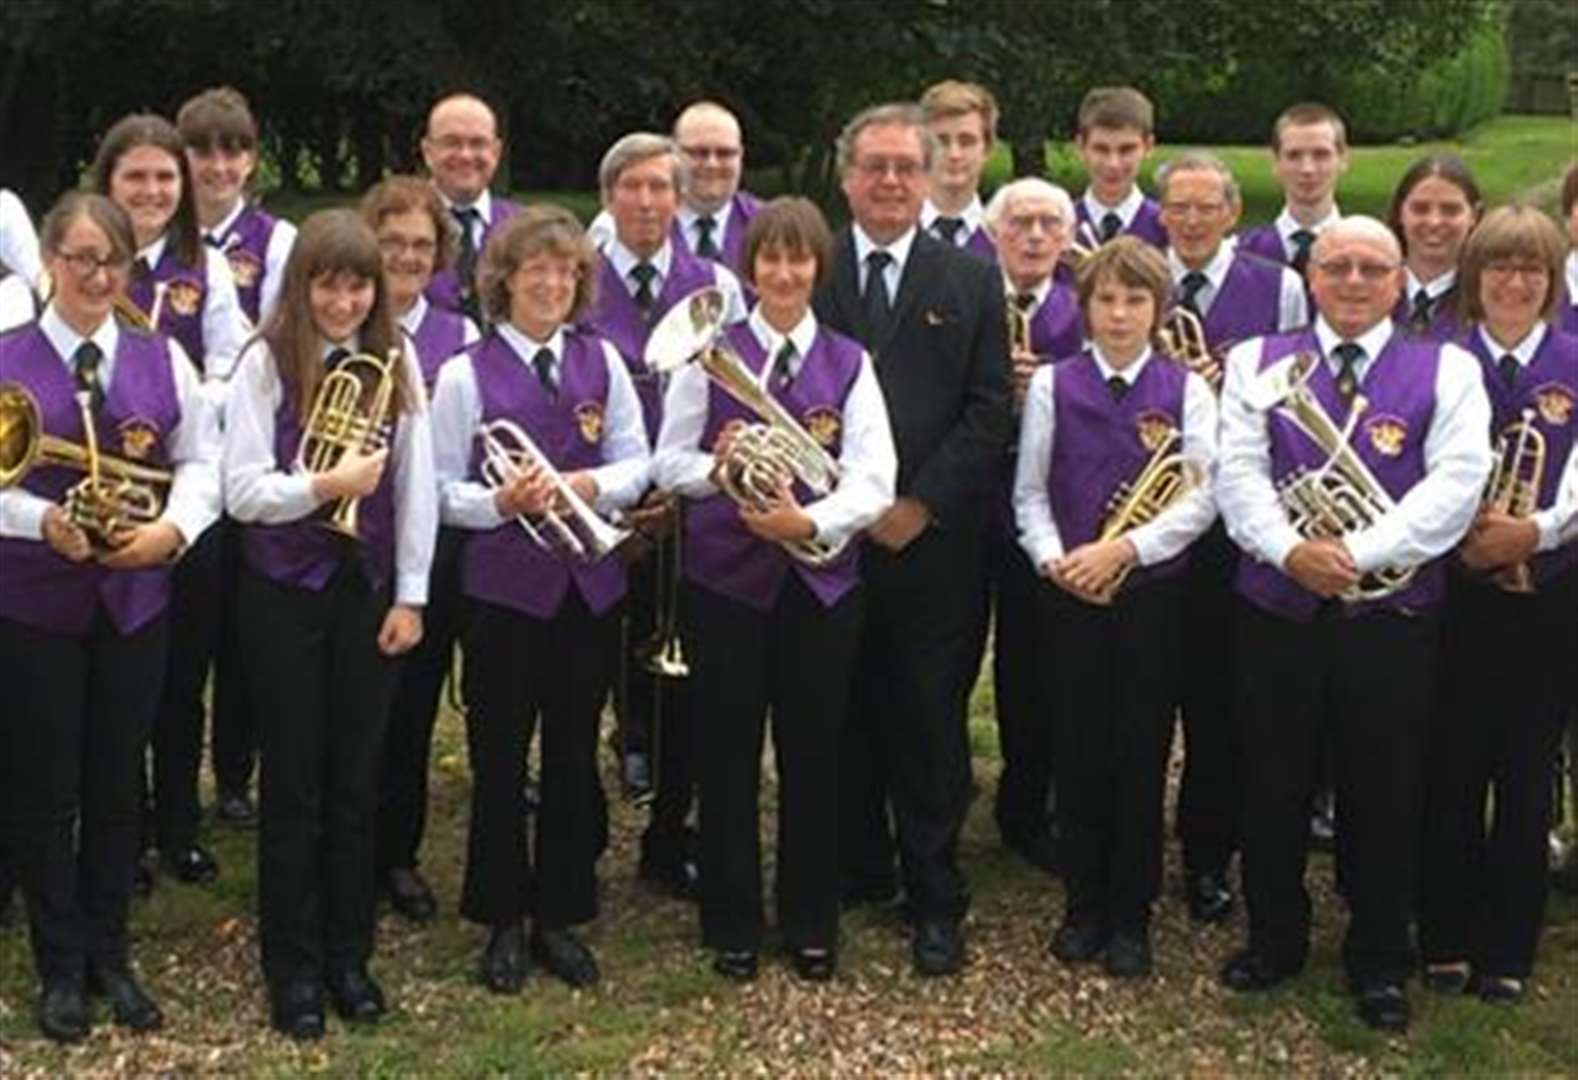 Learn to play a brass instrument with Holbeach Town Band